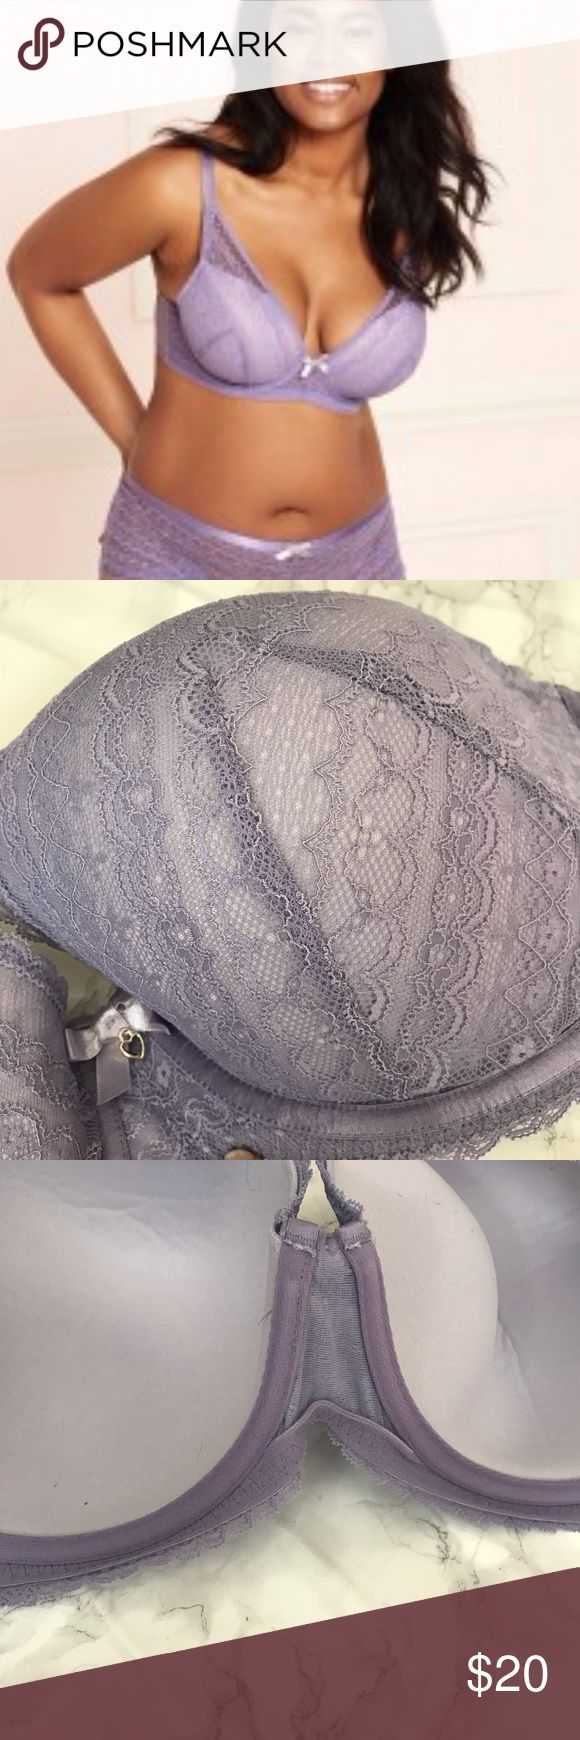 Astra Contour Plus Contour plunge Underwired Triple row hook & eye closure Nylon / Polyester / Spandex Nylon / Spandex Heirloom lilac Lace overlay with bow & heart charm detail  Wore this maybe 1-2 times lounging at home. Too big for me adore me Intimates & Sleepwear Bras